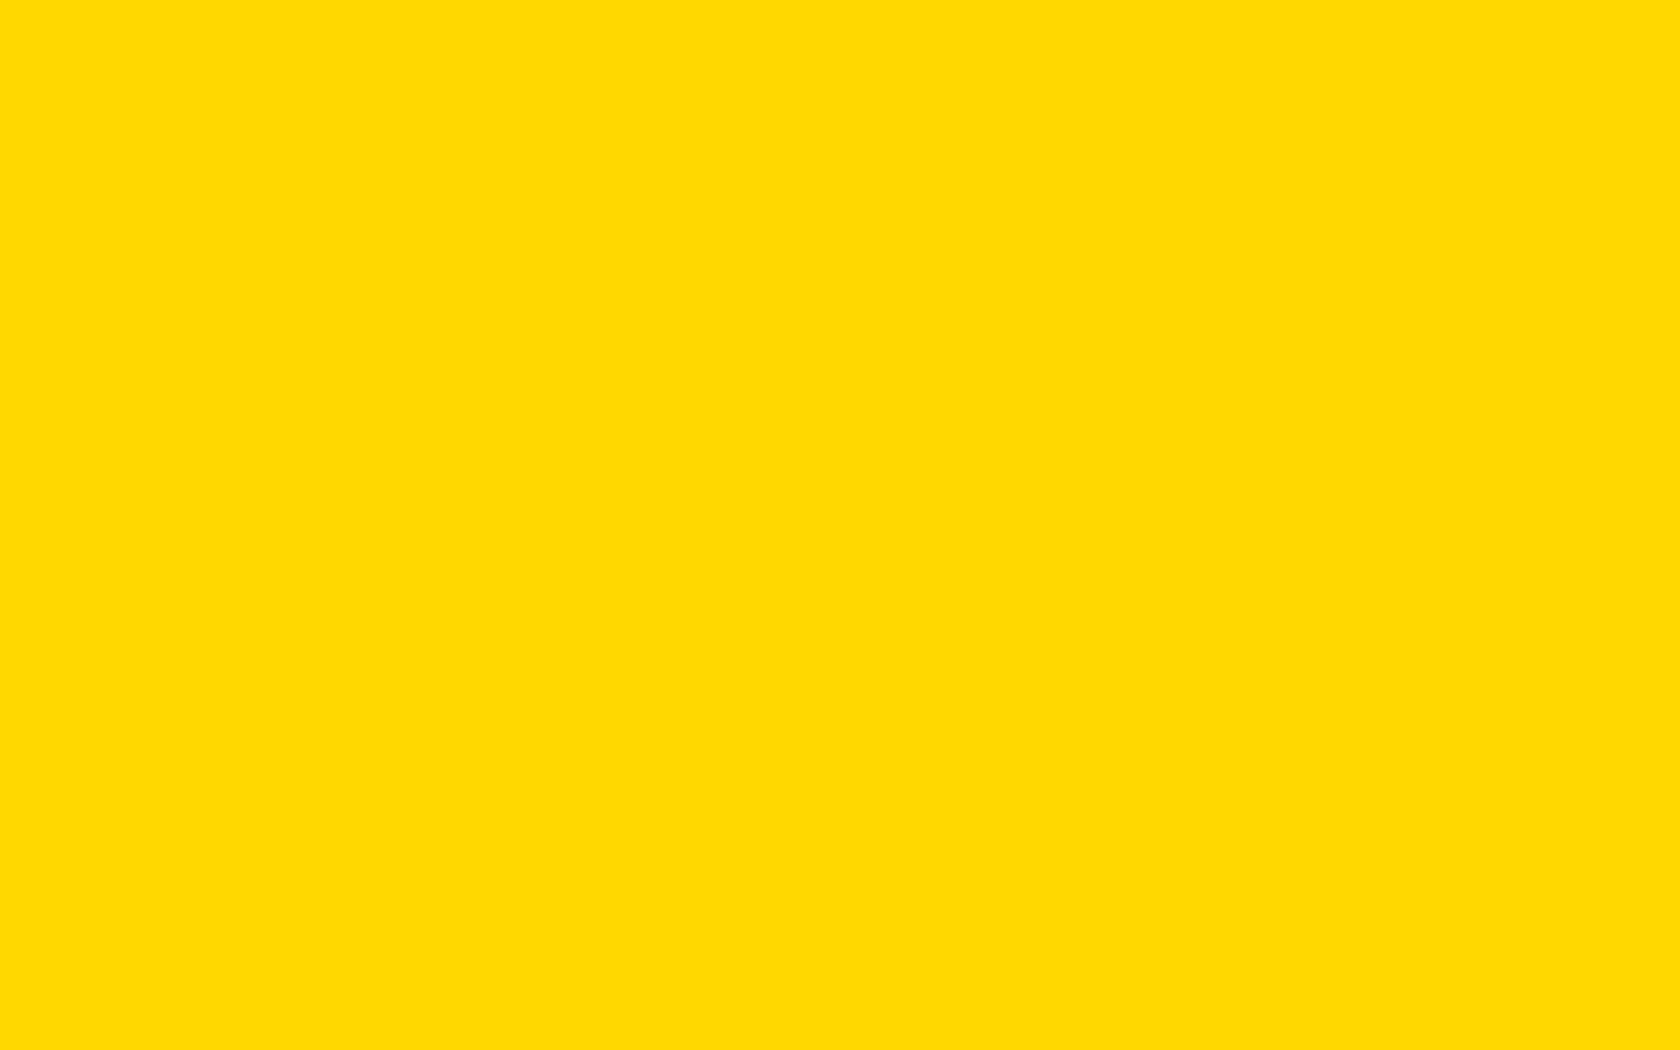 1680x1050 School Bus Yellow Solid Color Background